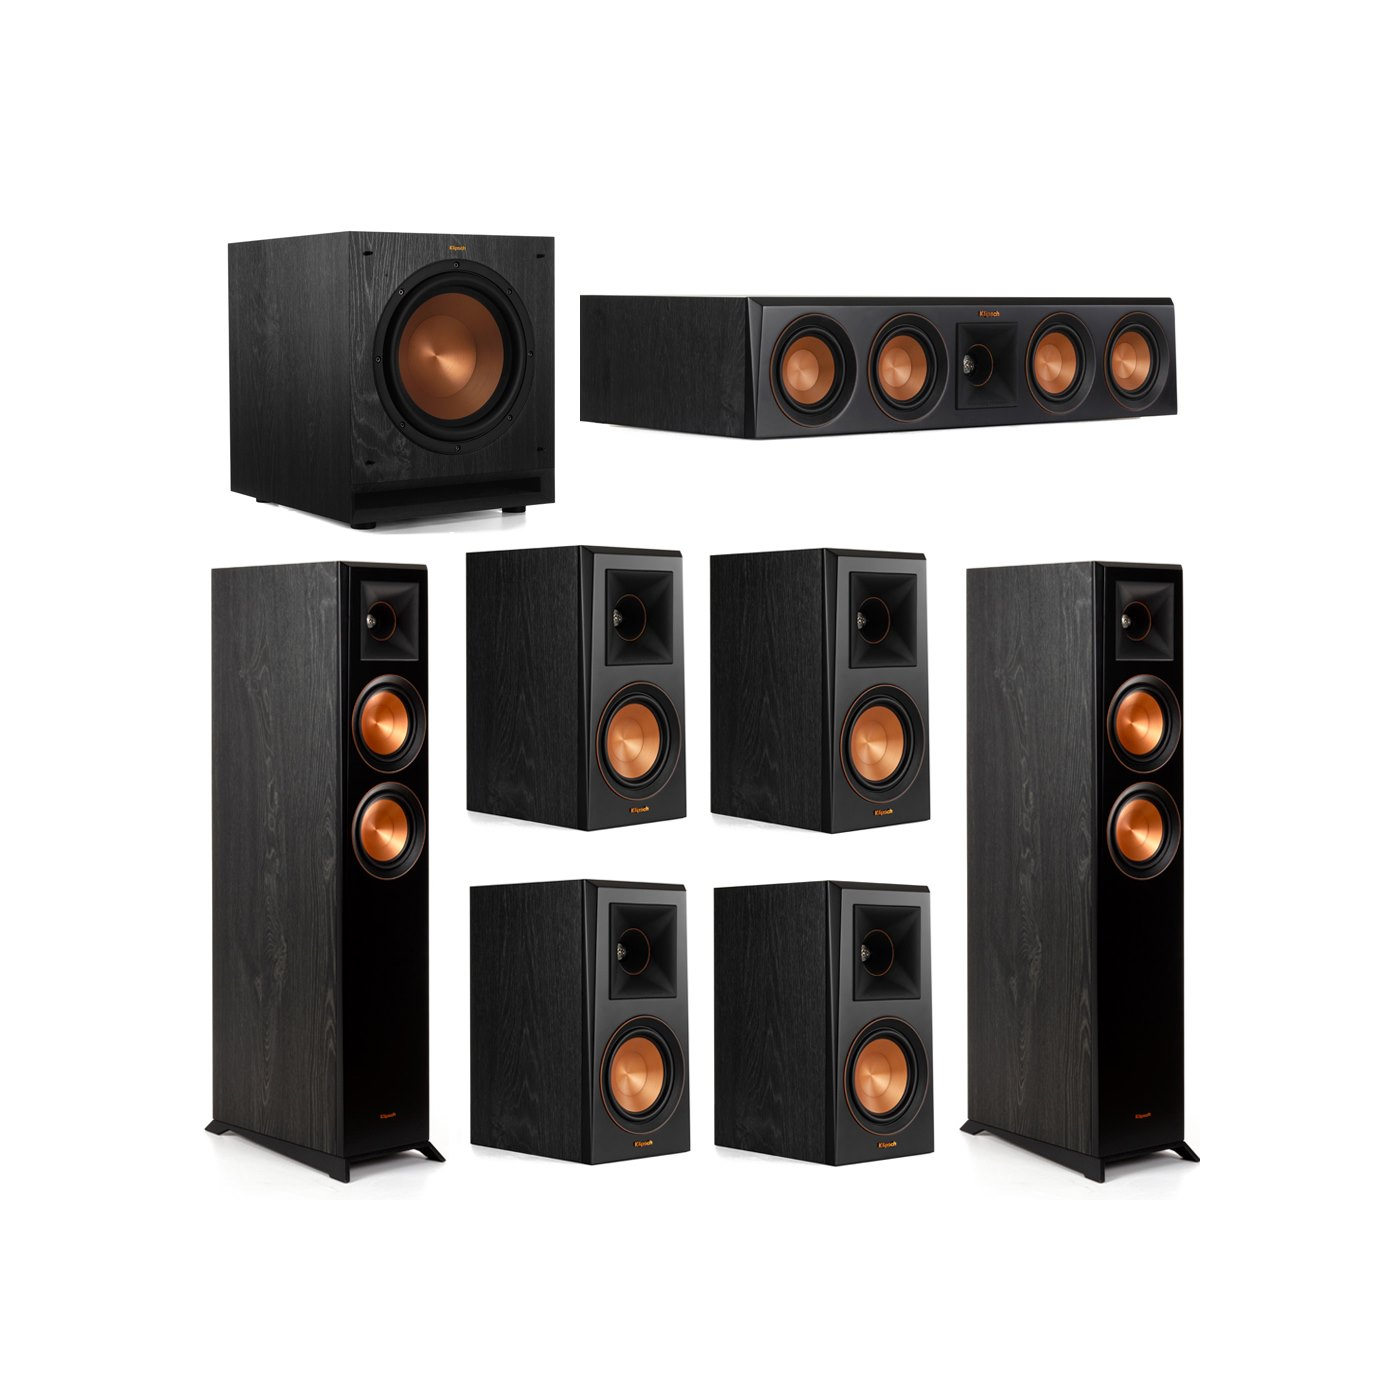 Klipsch 7.1 System with 2 RP-5000F Floorstanding Speakers, 1 Klipsch RP-404C Center Speaker, 4 Klipsch RP-500M Surround Speakers, 1 Klipsch SPL-100 Subwoofer